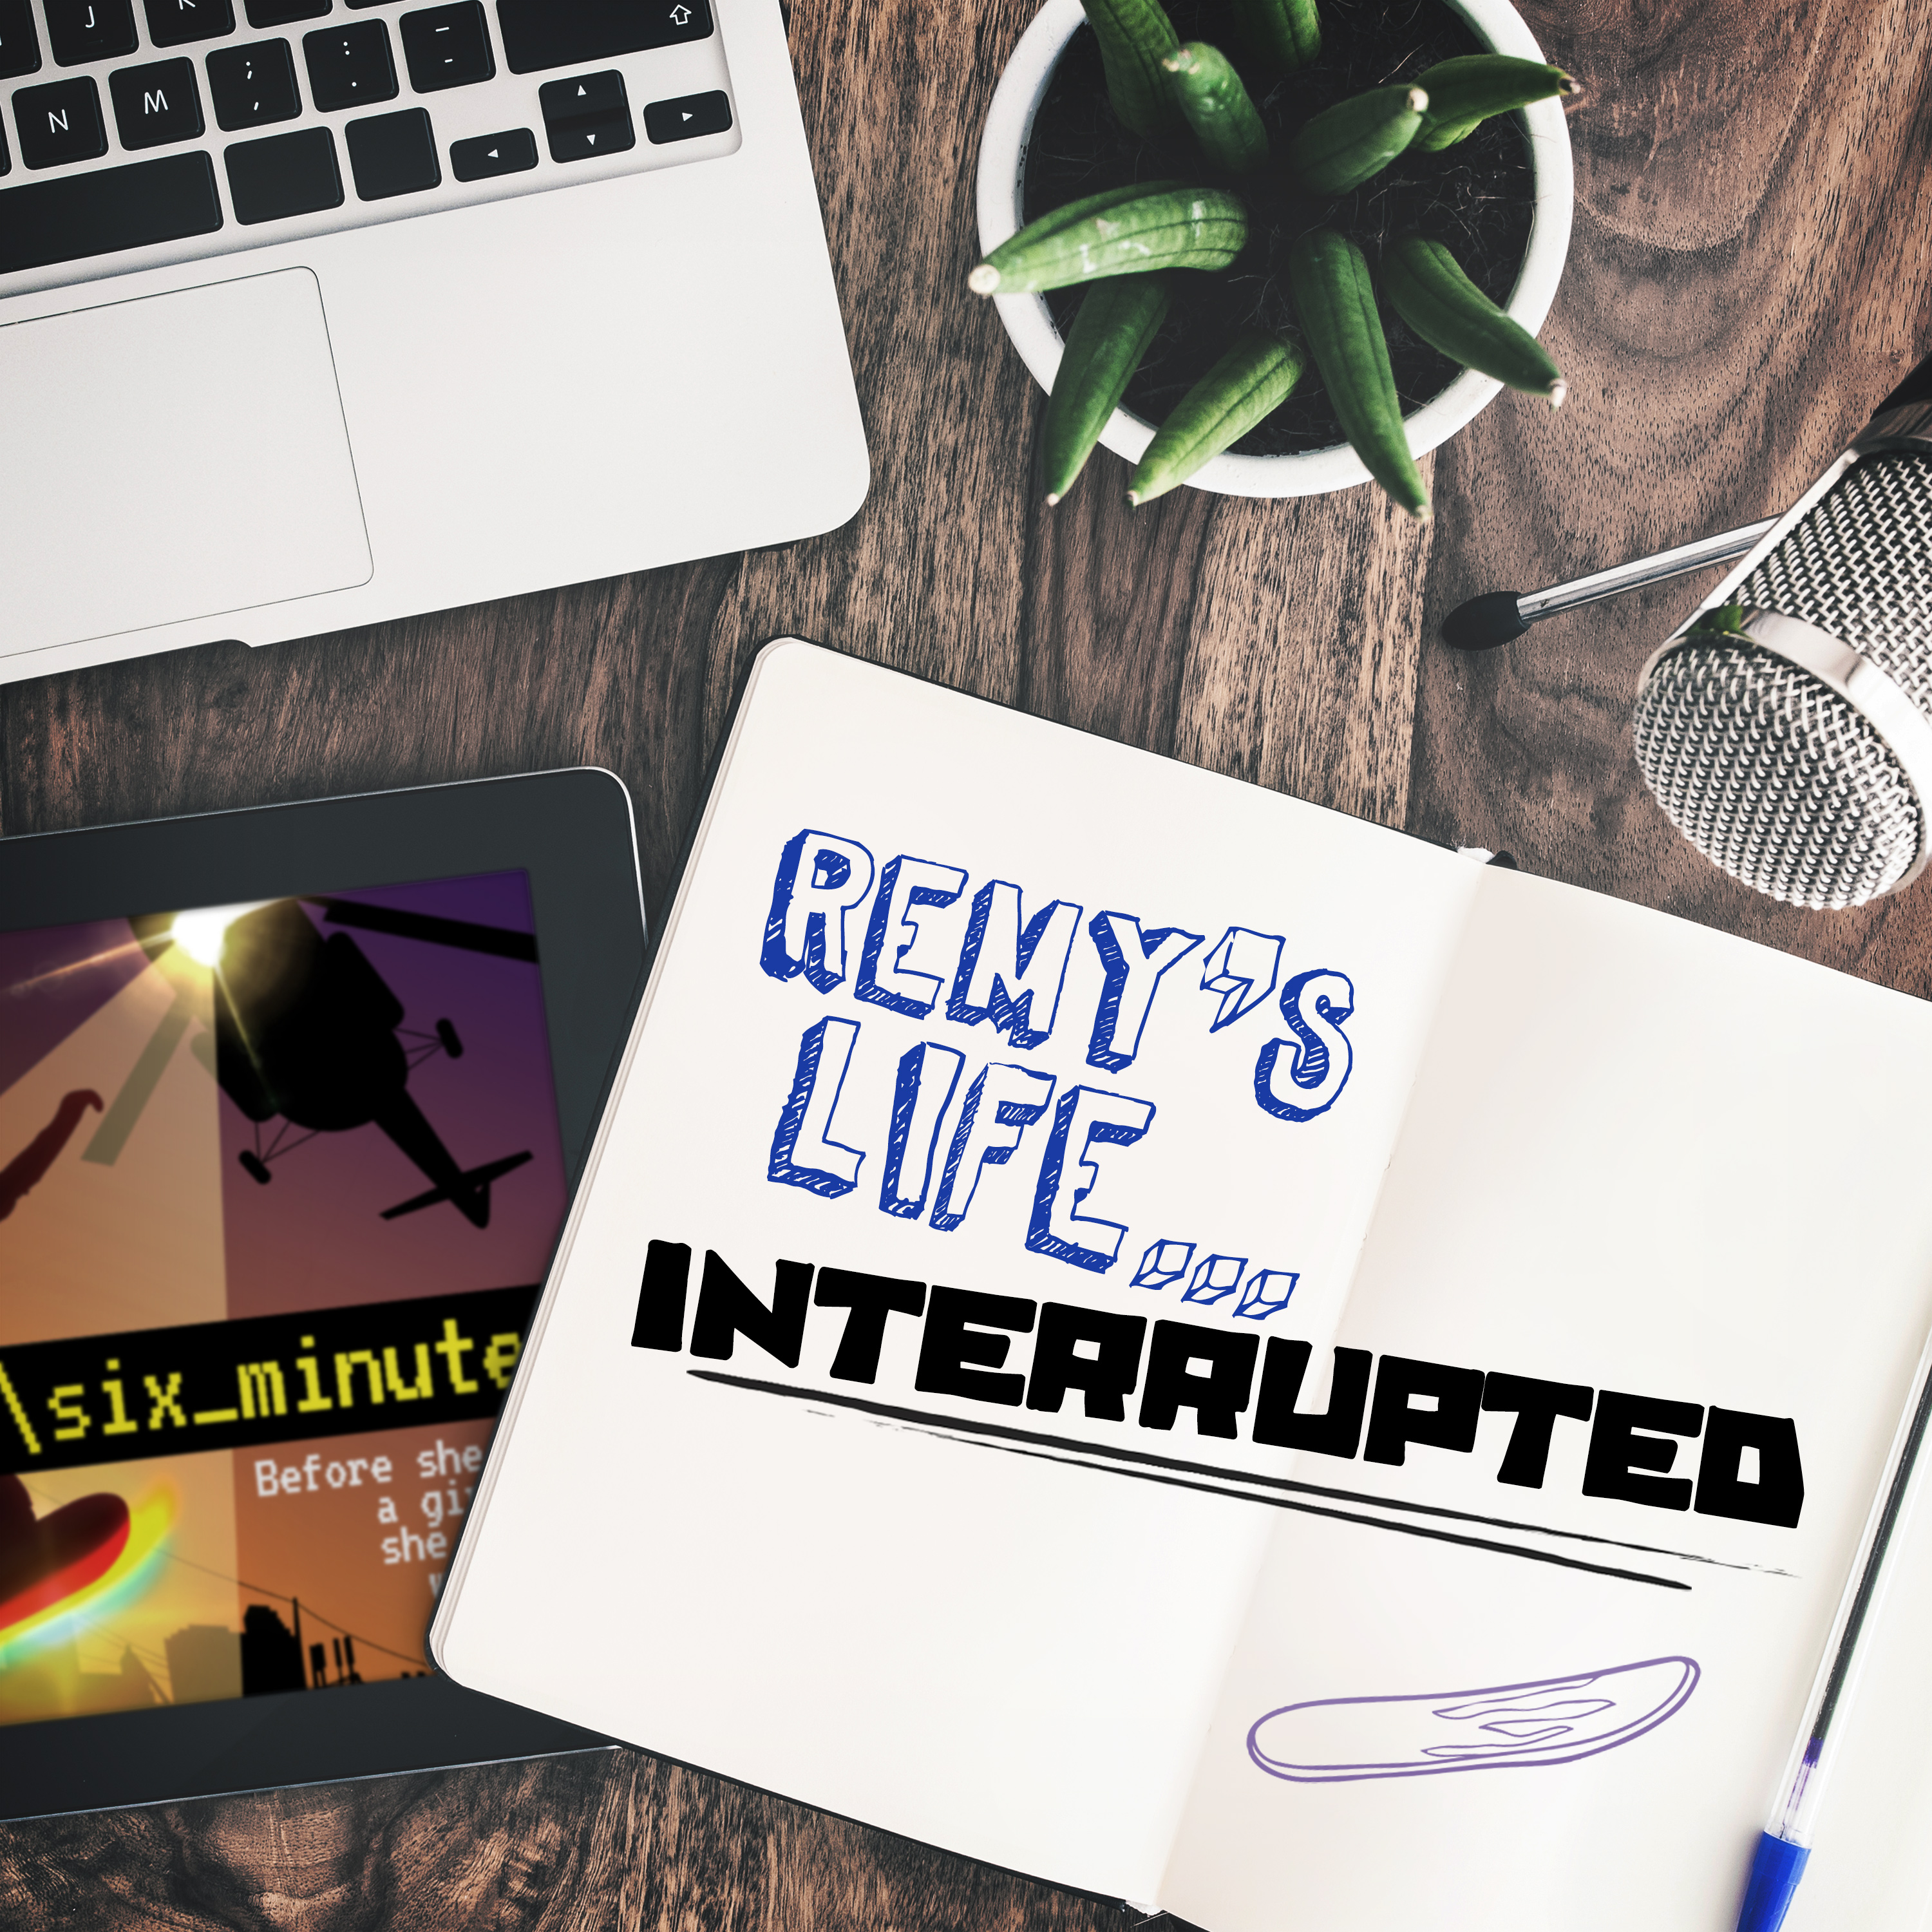 Remy's Life Interrupted: EP1